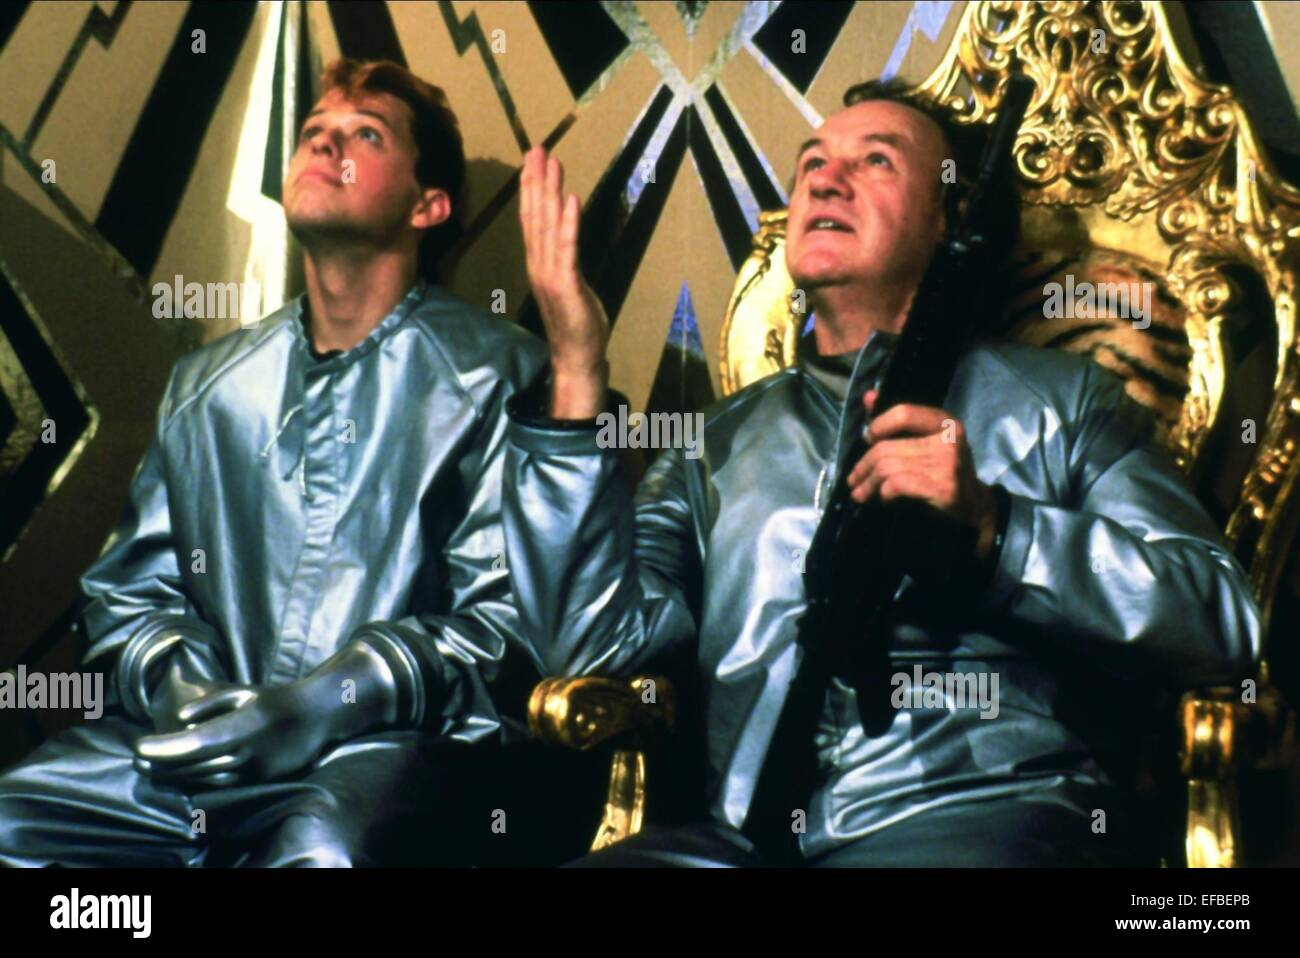 JON CRYER, GENE HACKMAN, SUPERMAN IV: THE QUEST FOR PEACE, 1987 - Stock Image